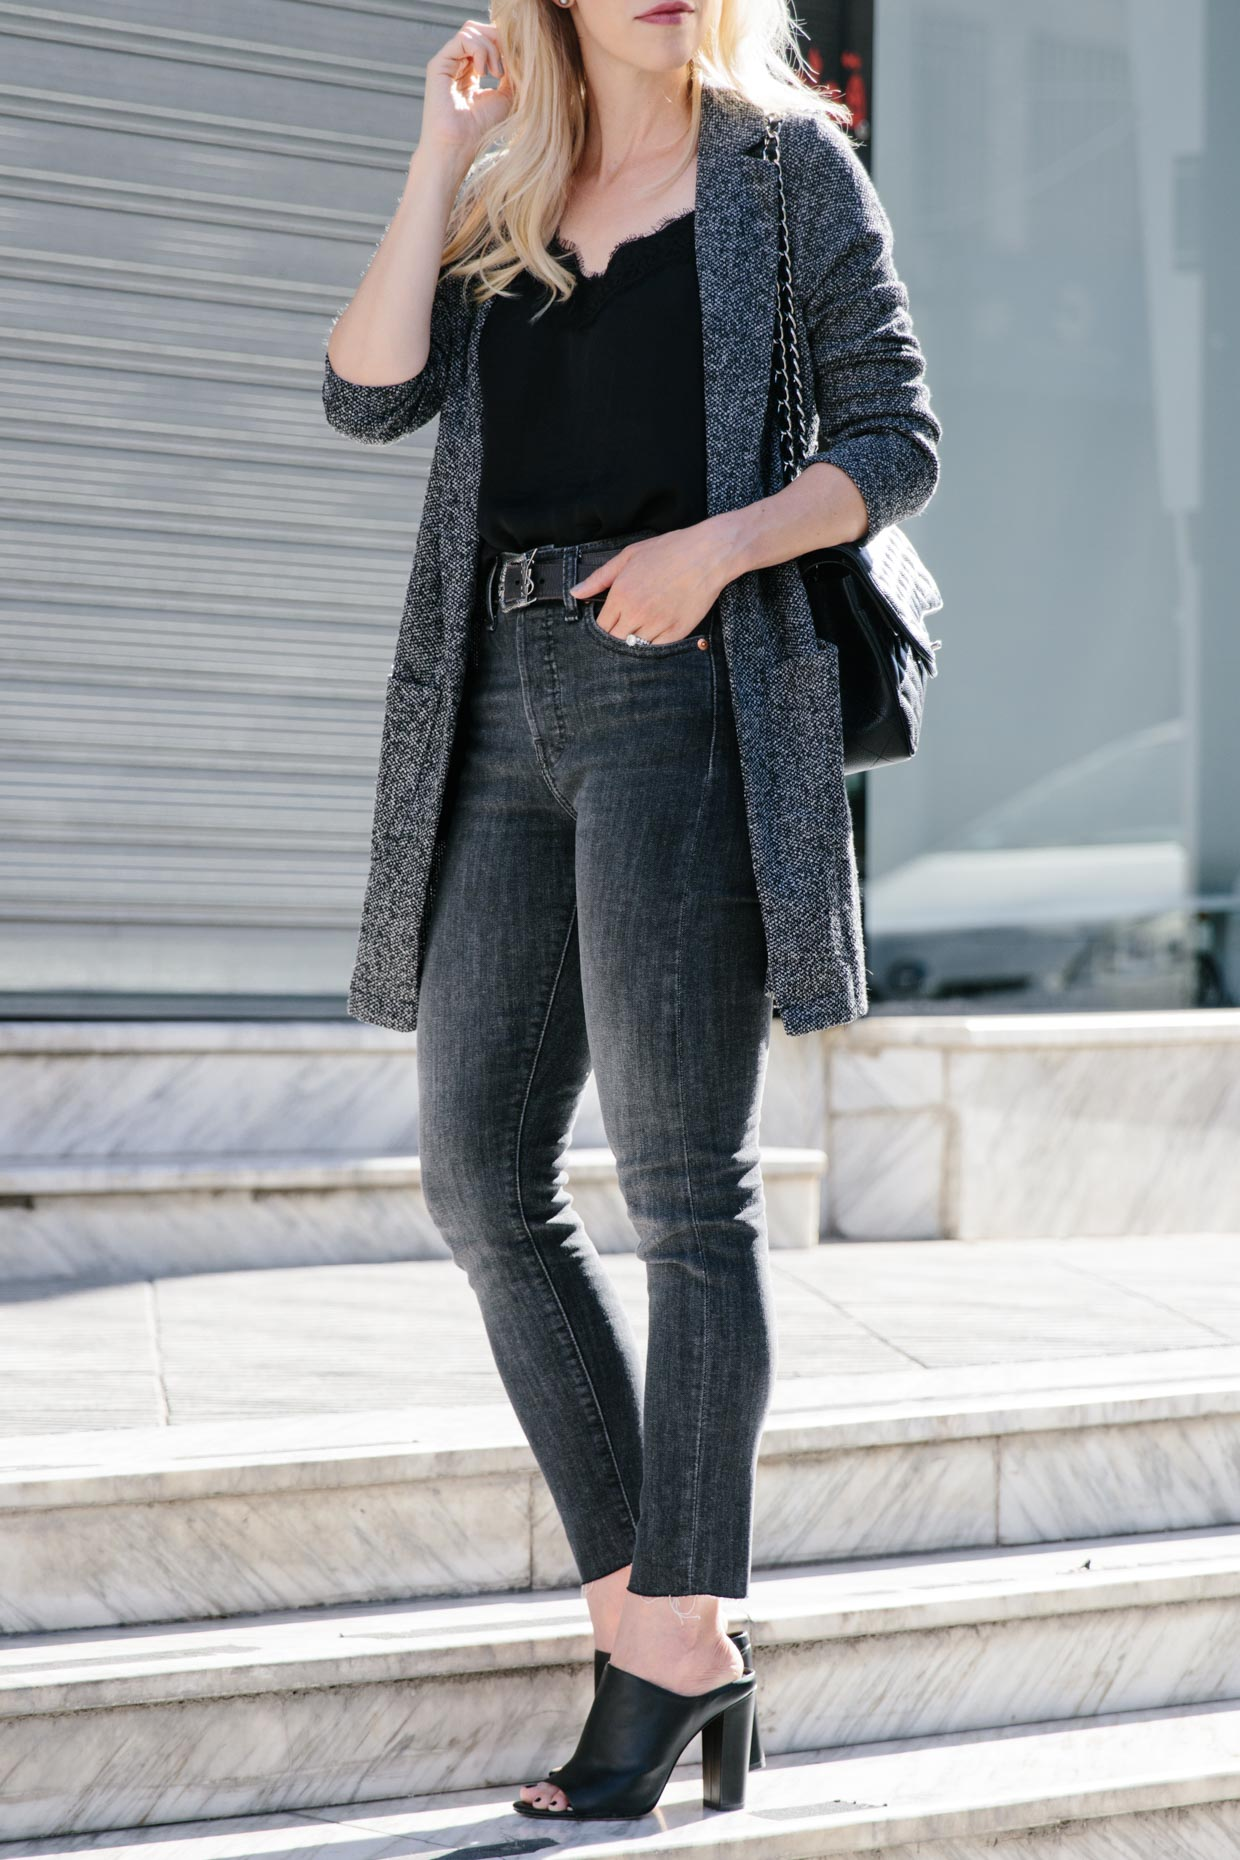 f6245a06f65032 Chic way to wear a long blazer with black lace camisole